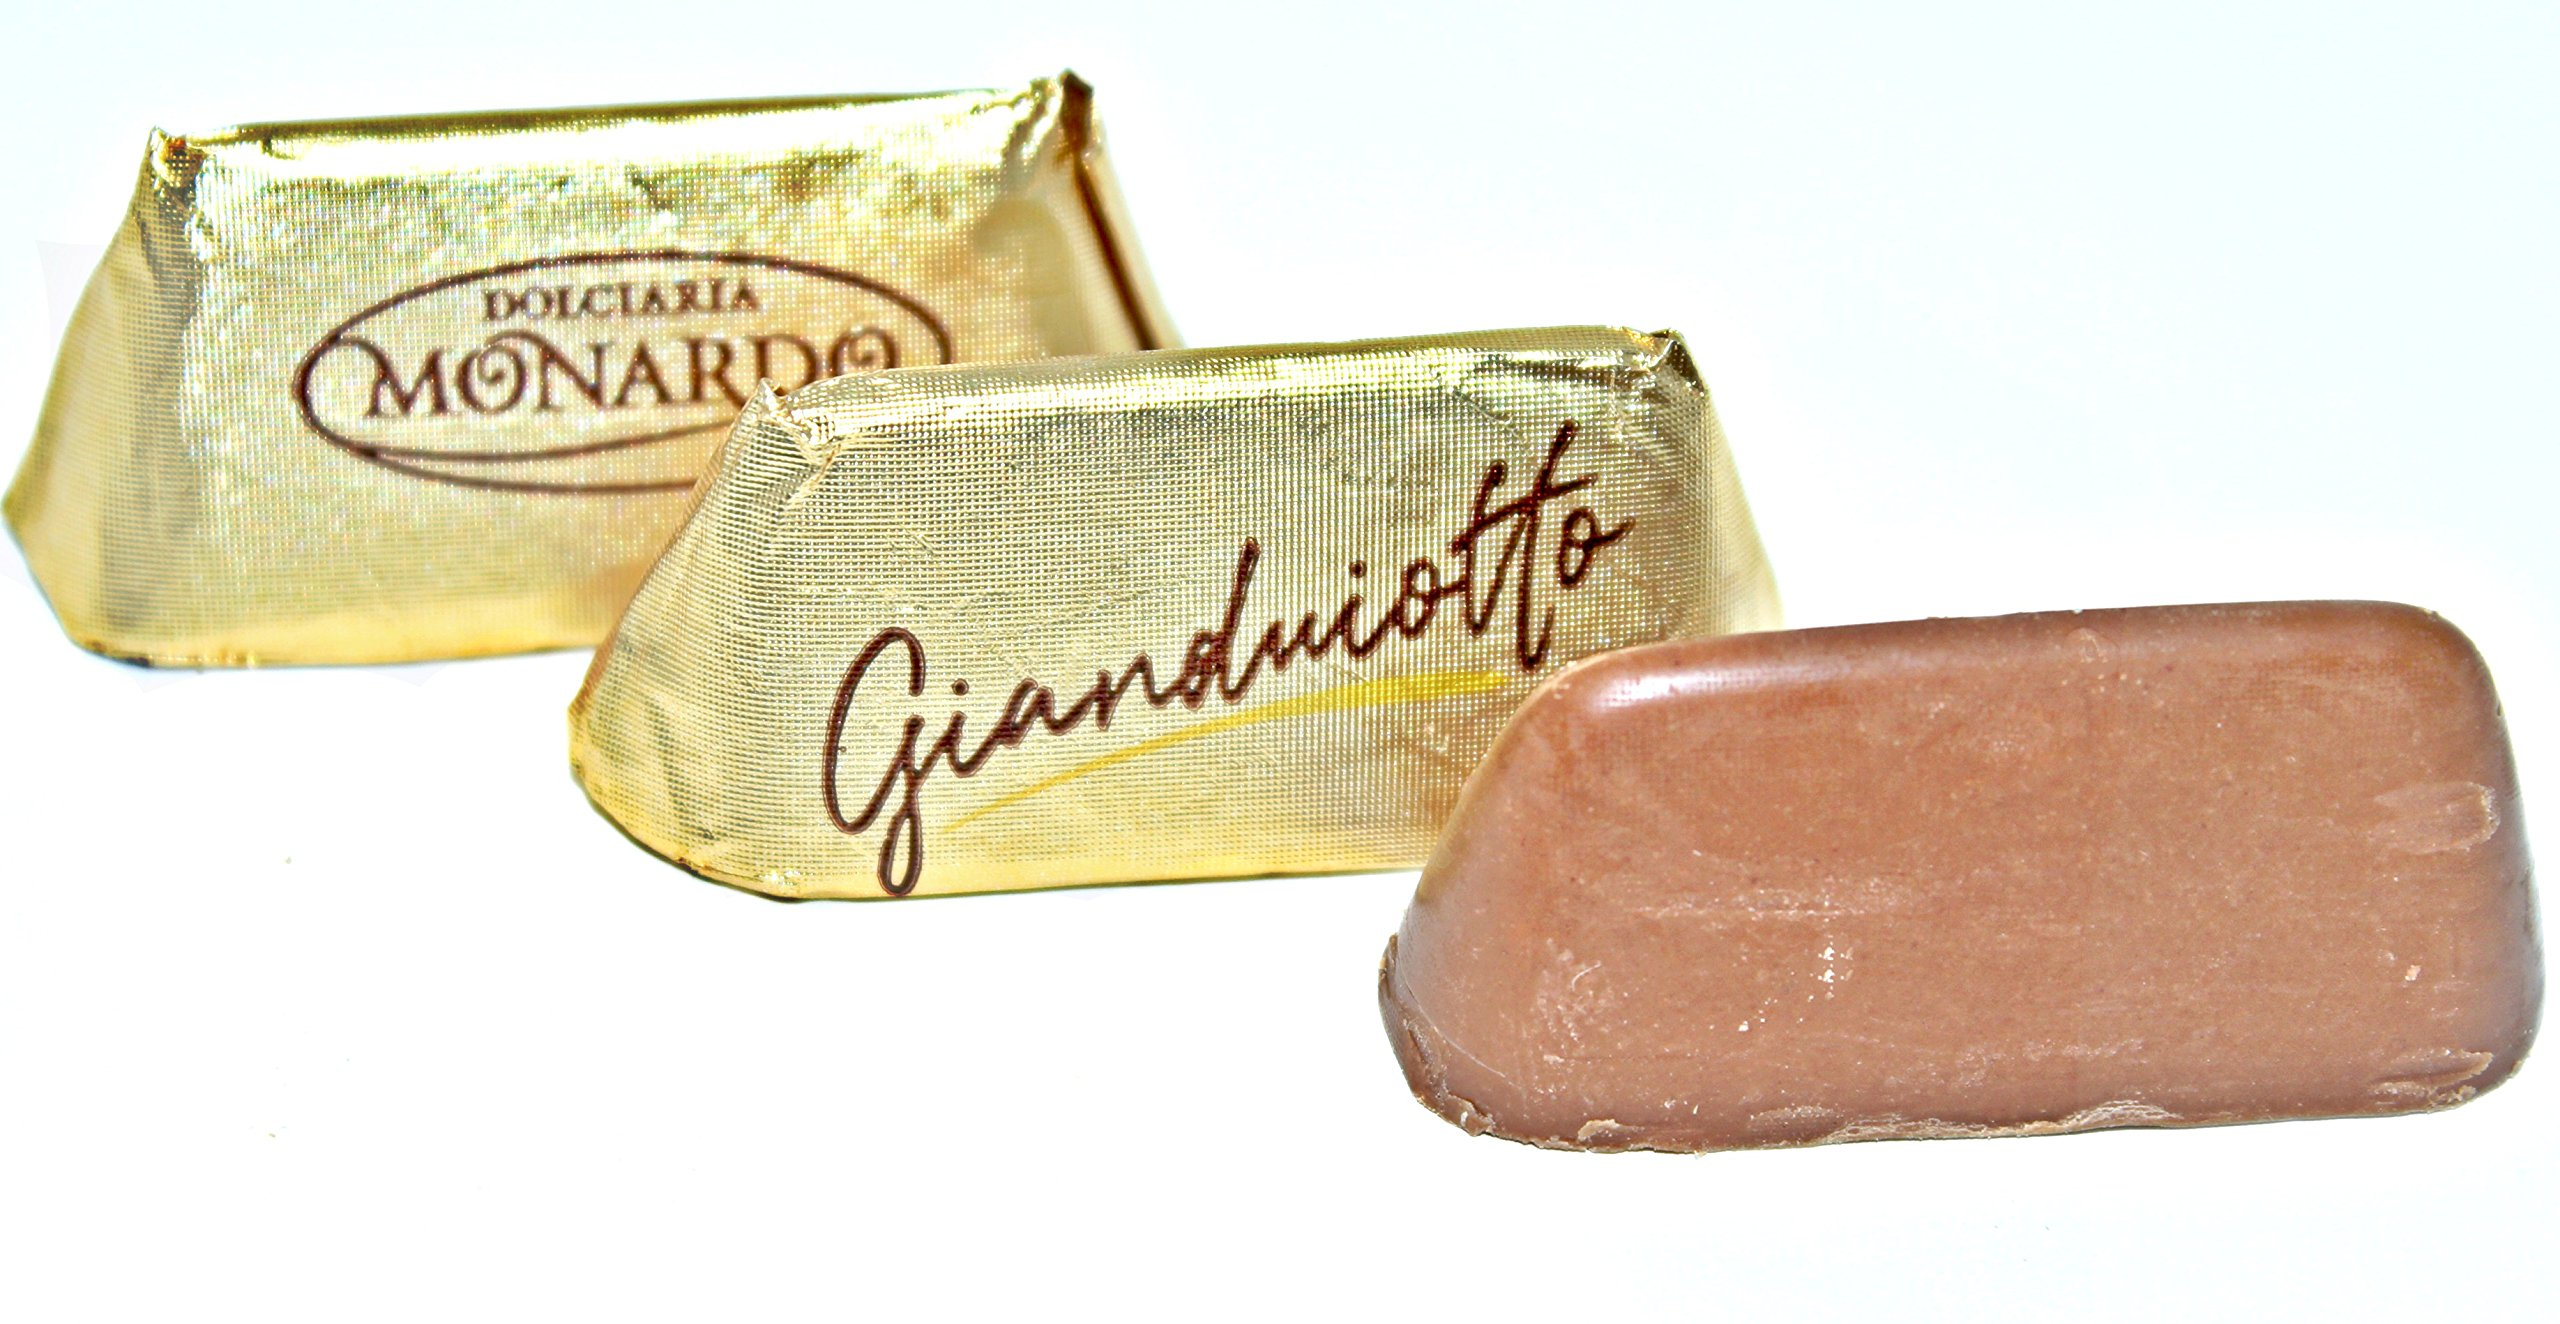 Monardo, Italian Gold Gianduiotto Smooth Blend of Milk Chocolate w/ Rst Hazelnut Butter (Gianduia) (50 pcs)